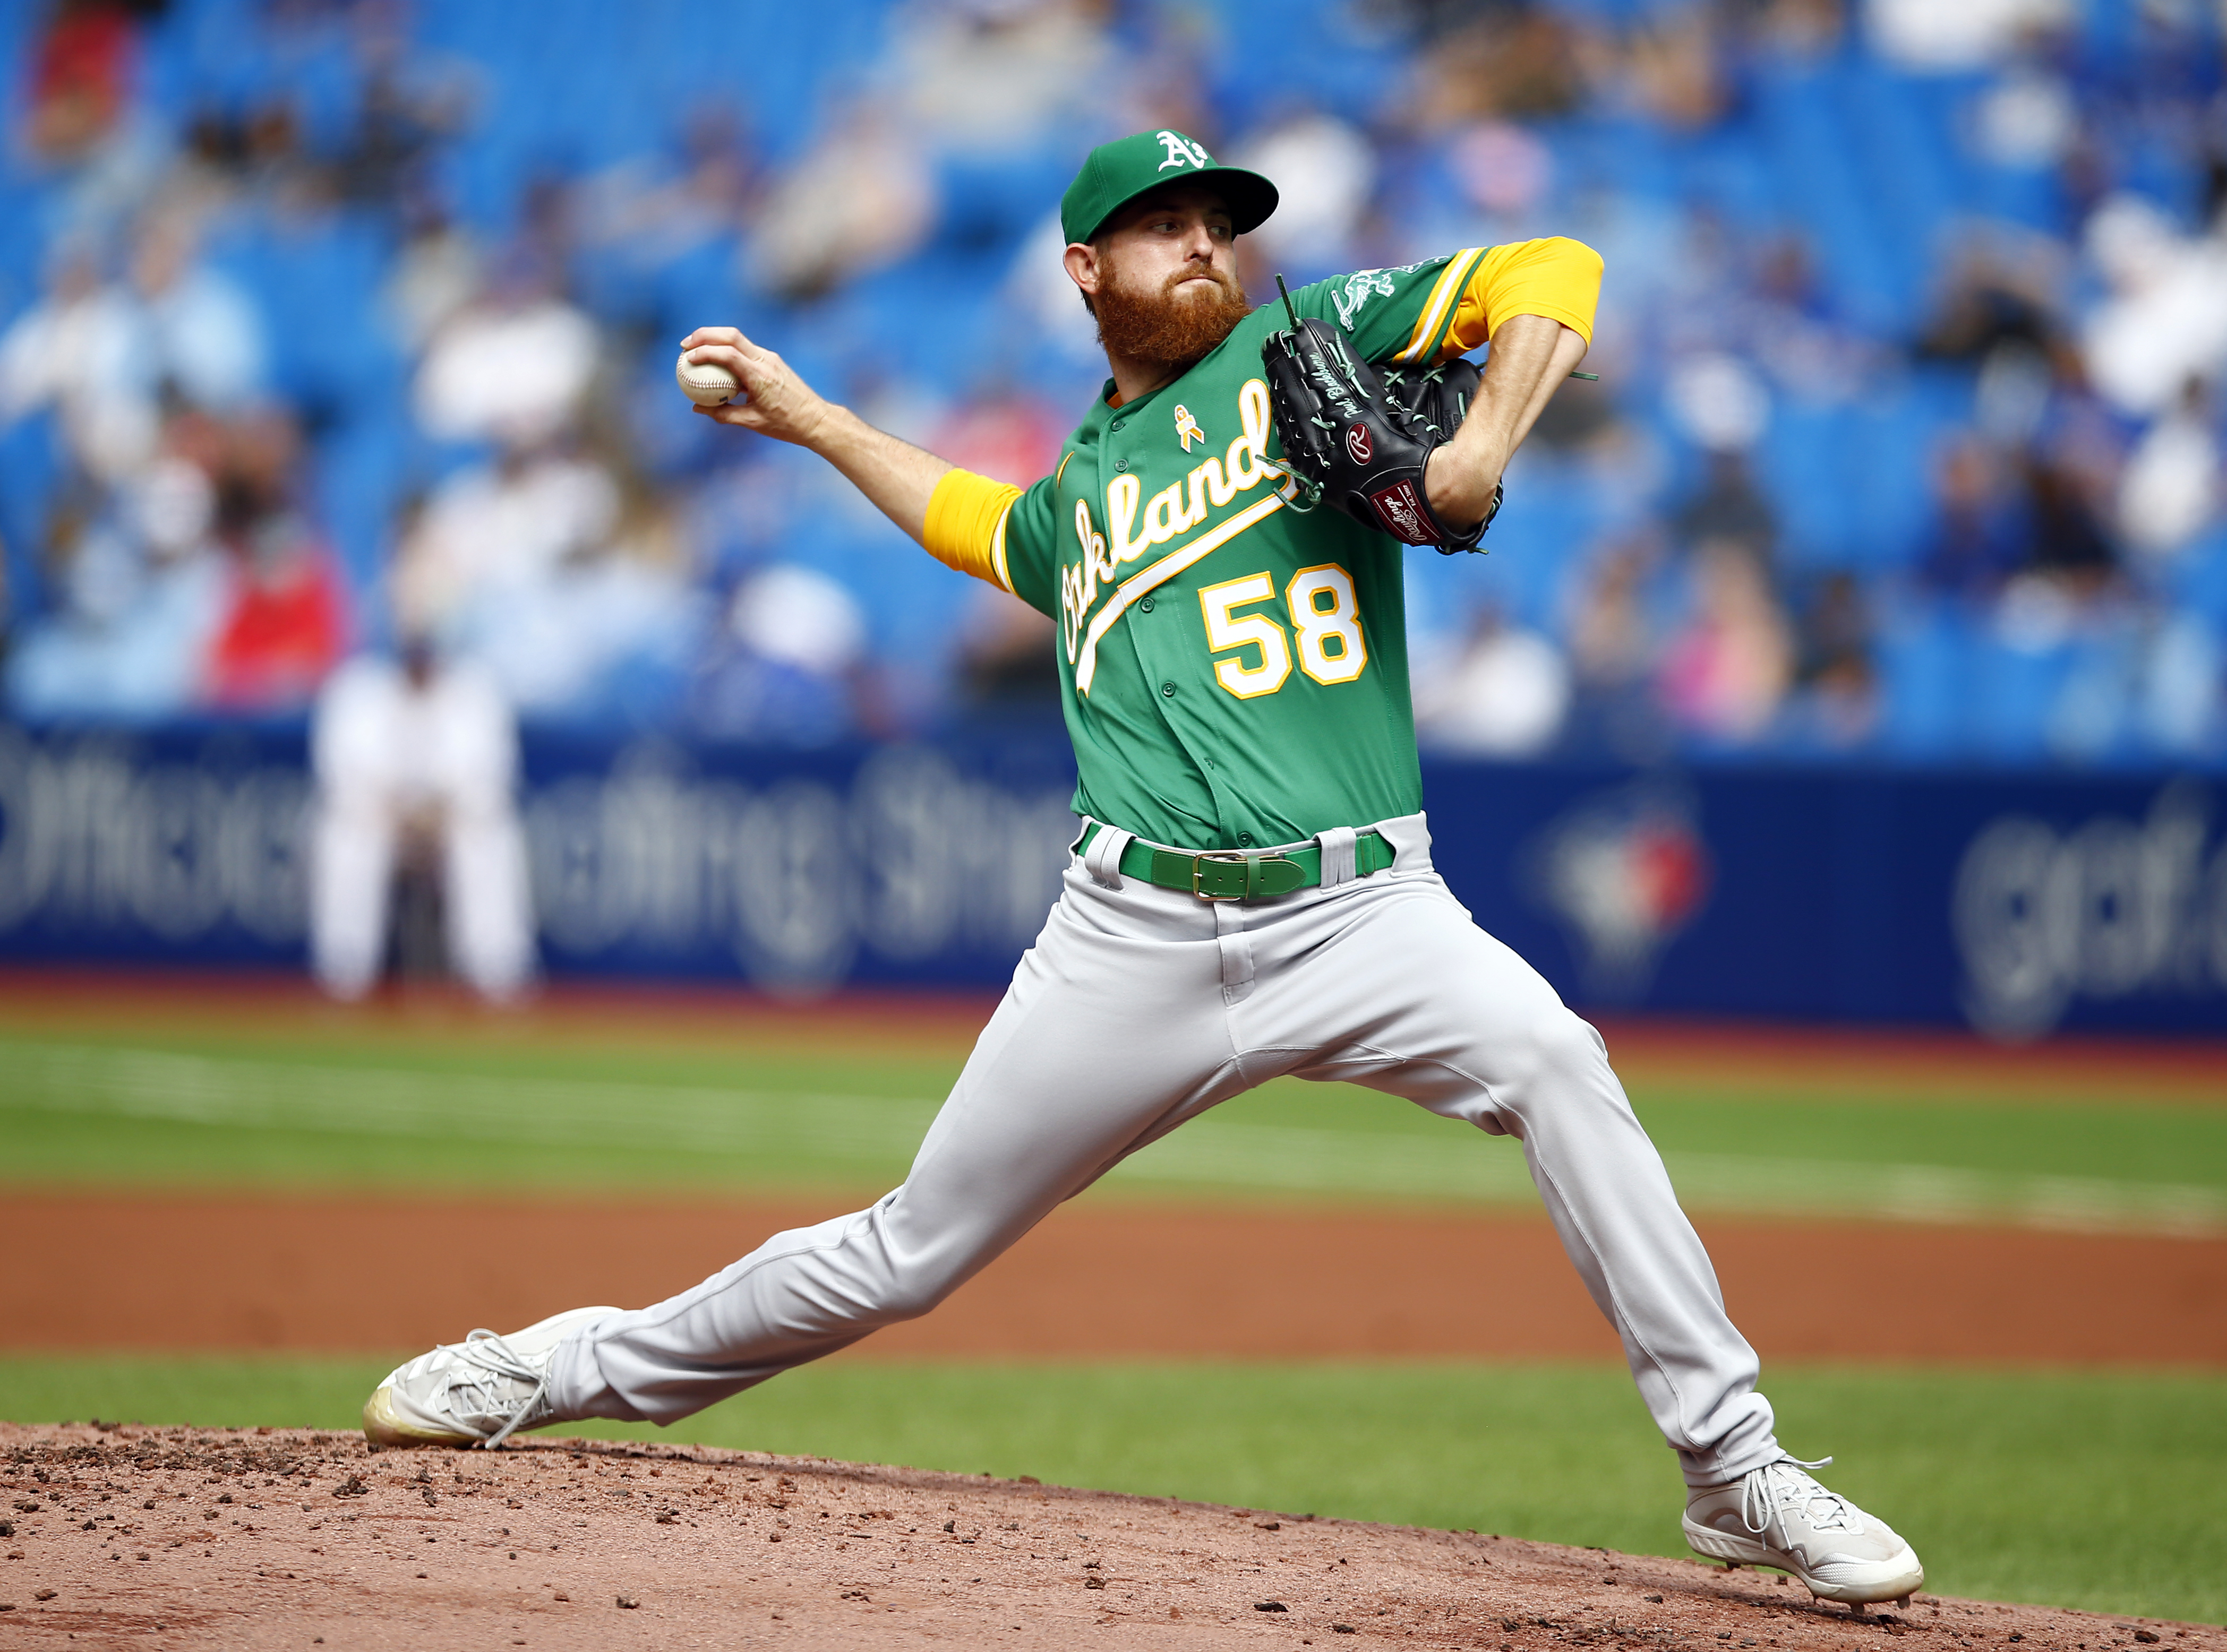 Paul Blackburn #58 of the Oakland Athletics delivers a pitch in the first inning during a MLB game against the Toronto Blue Jays at Rogers Centre on September 4, 2021 in Toronto, Ontario, Canada.